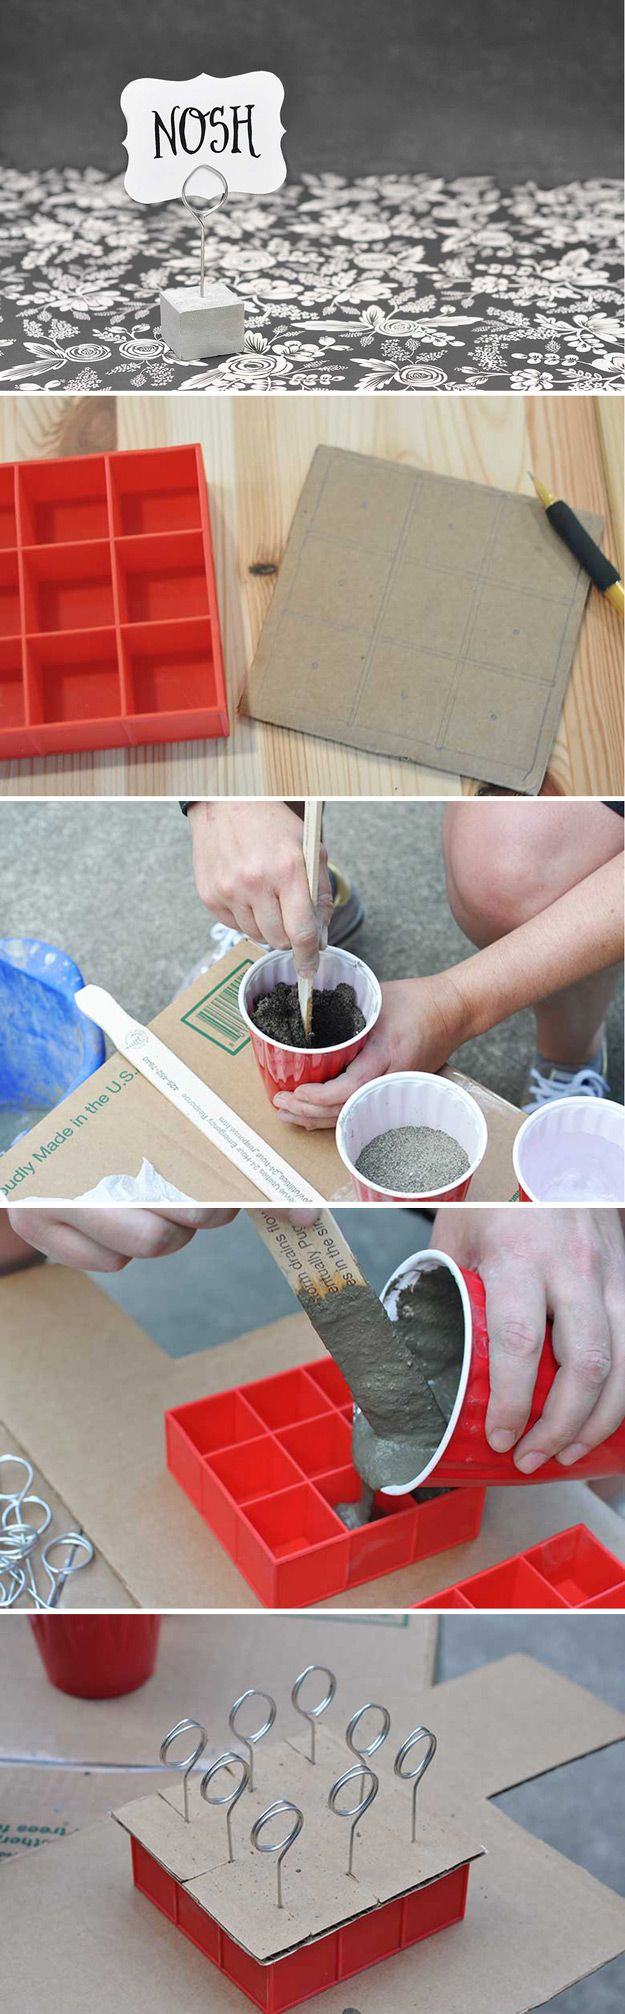 Cute Homemade Craft Projects with Ice Cube Trays | Cement and Wire Stands by DIY Ready at http://diyready.com/14-unexpected-ways-to-use-an-ice-cube-tray/